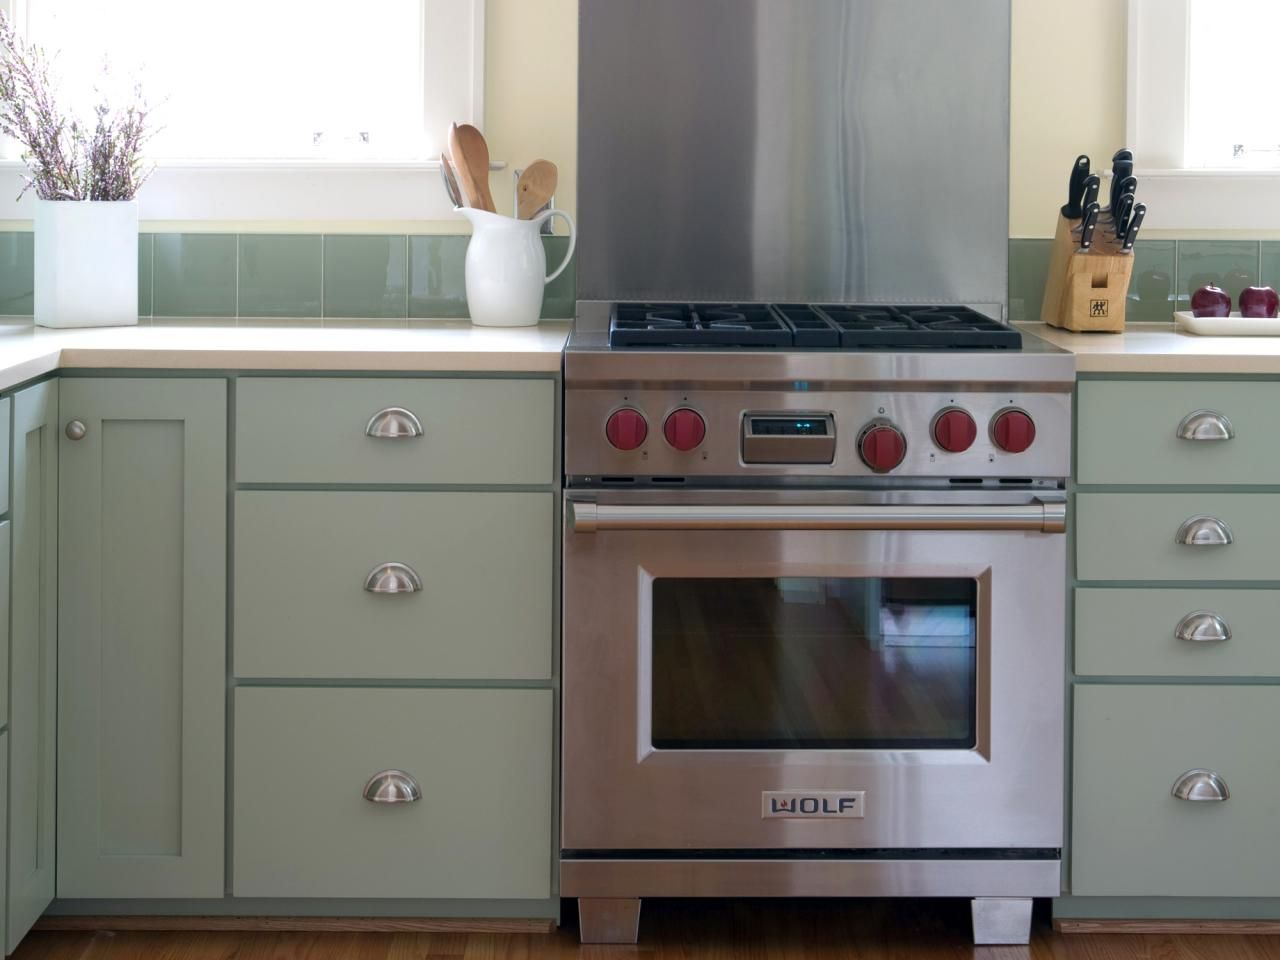 Color Ideas For Painting Kitchen Cabinets Hgtv Pictures Kitchen Cabinet Color Options Kitchen Cabinet Colors Kitchen Paint